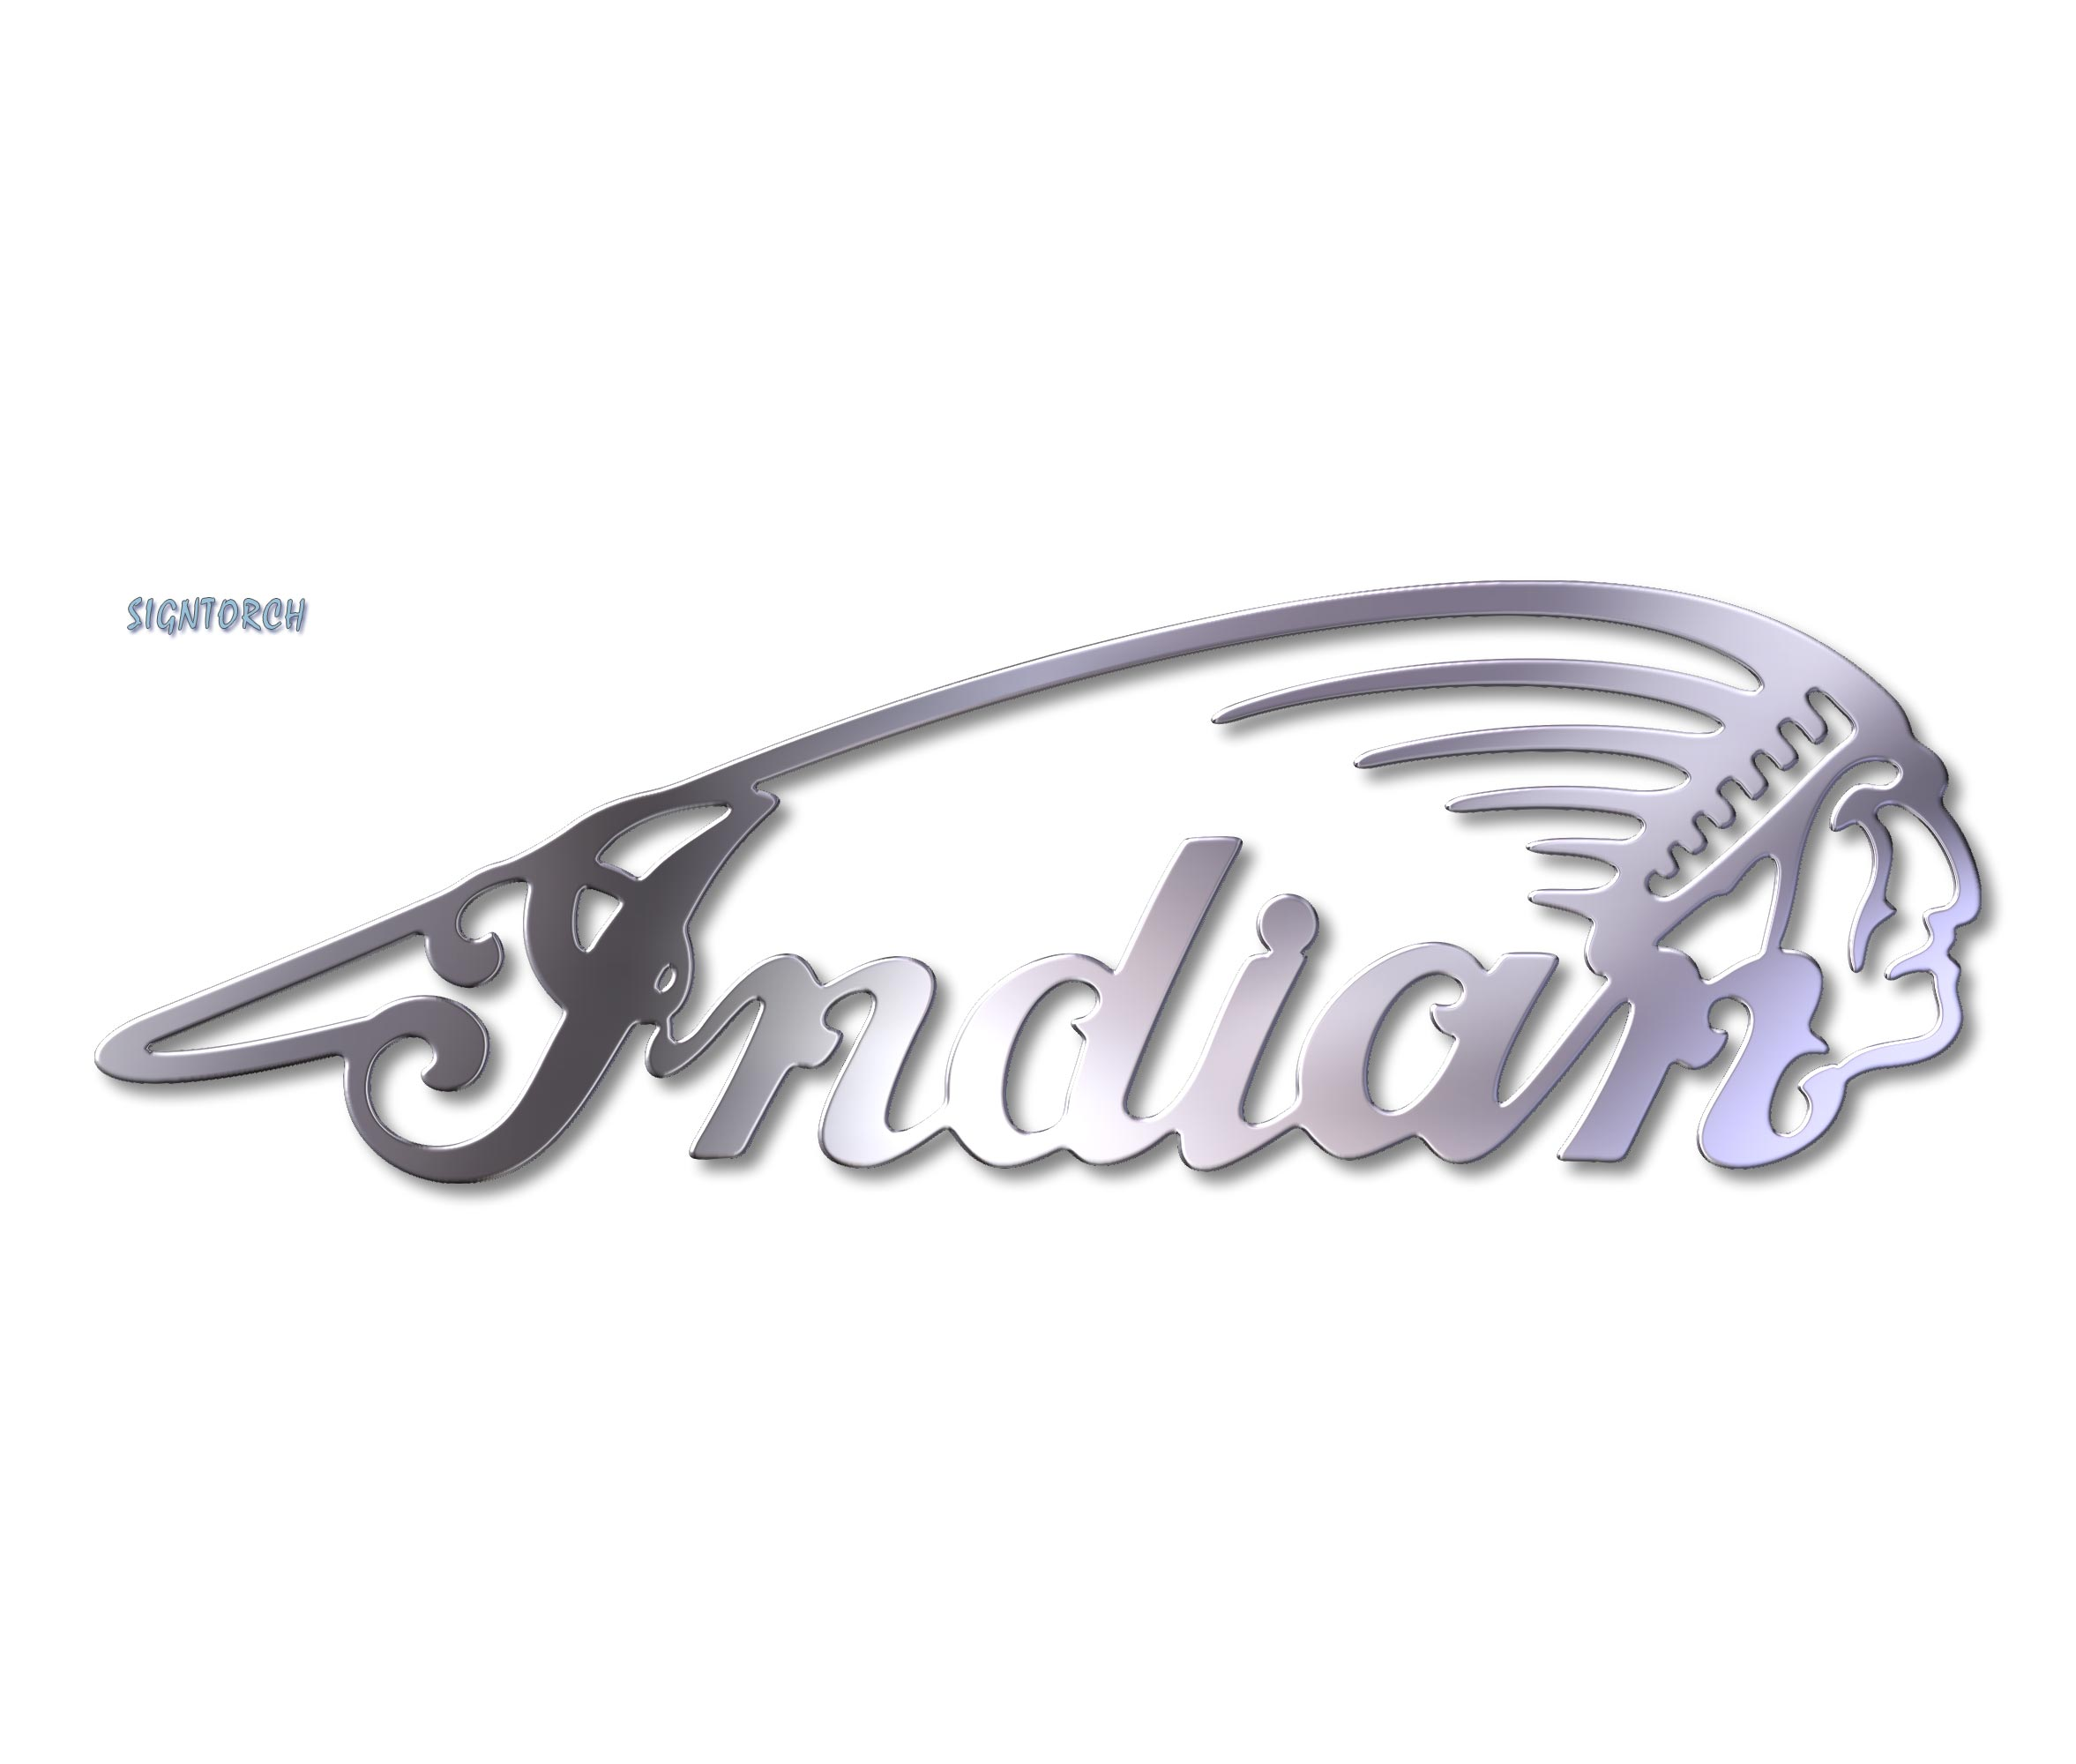 indian motorcycle logo readytocut vector art for cnc